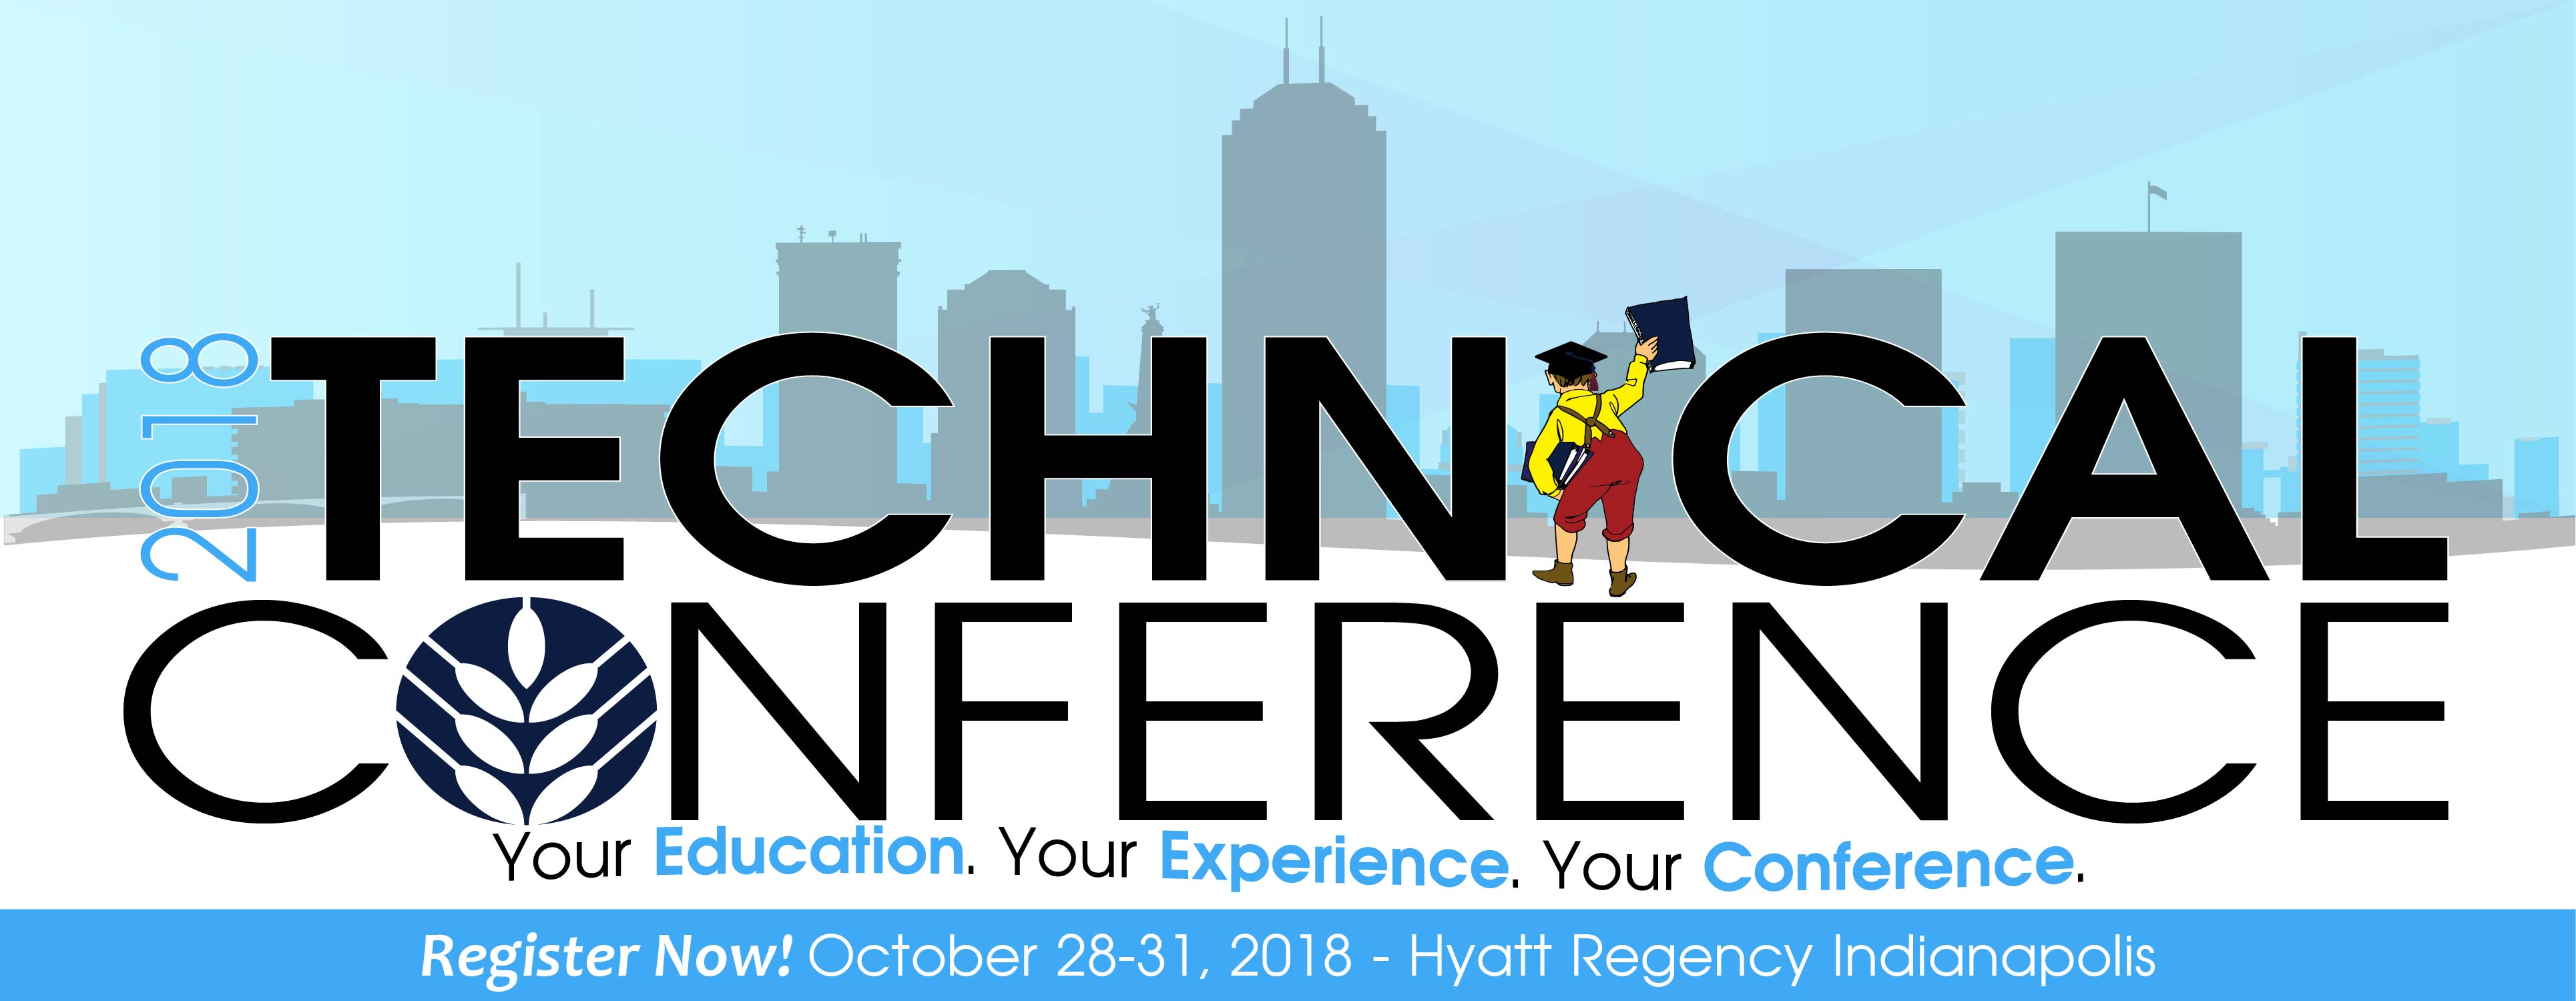 2018 Technical Conference